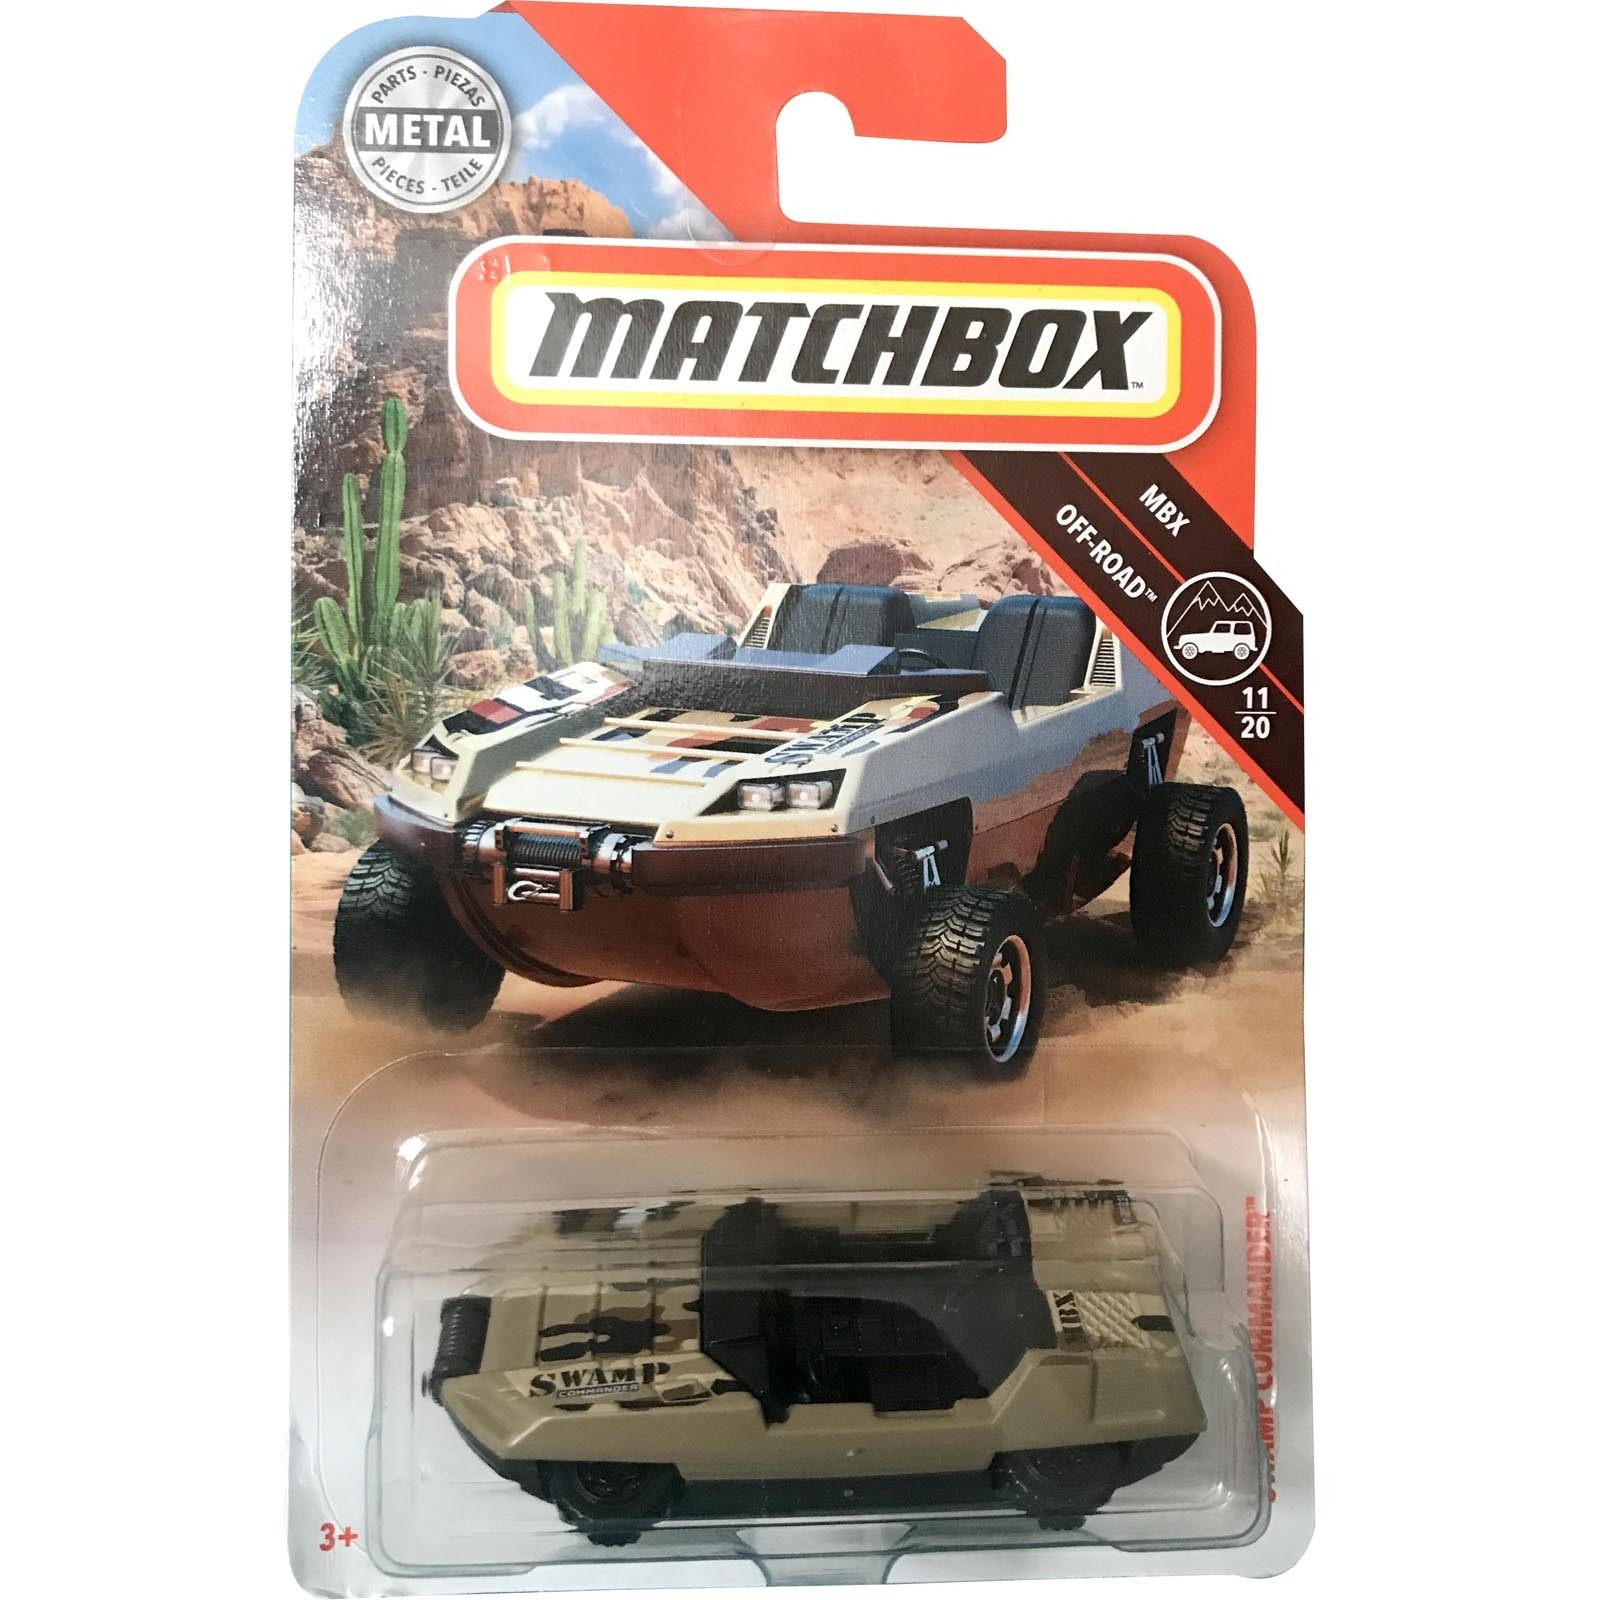 Matchbox - Swamp Commander - FHH40